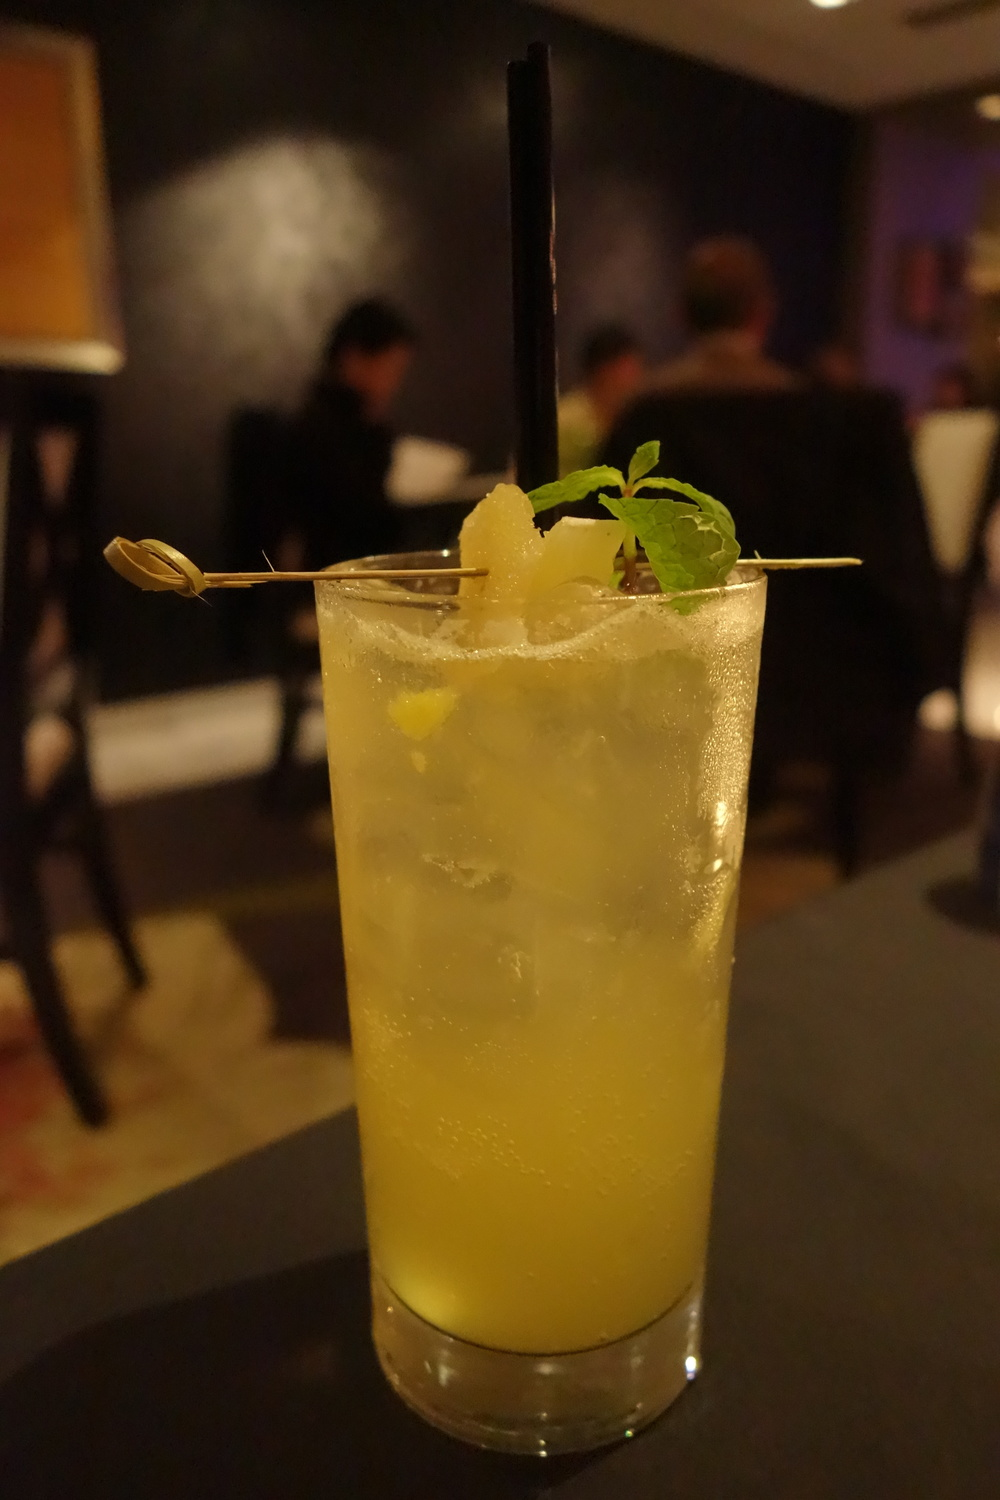 Virgin Pineapple Express Drink at Anzu Restaurant and Bar.